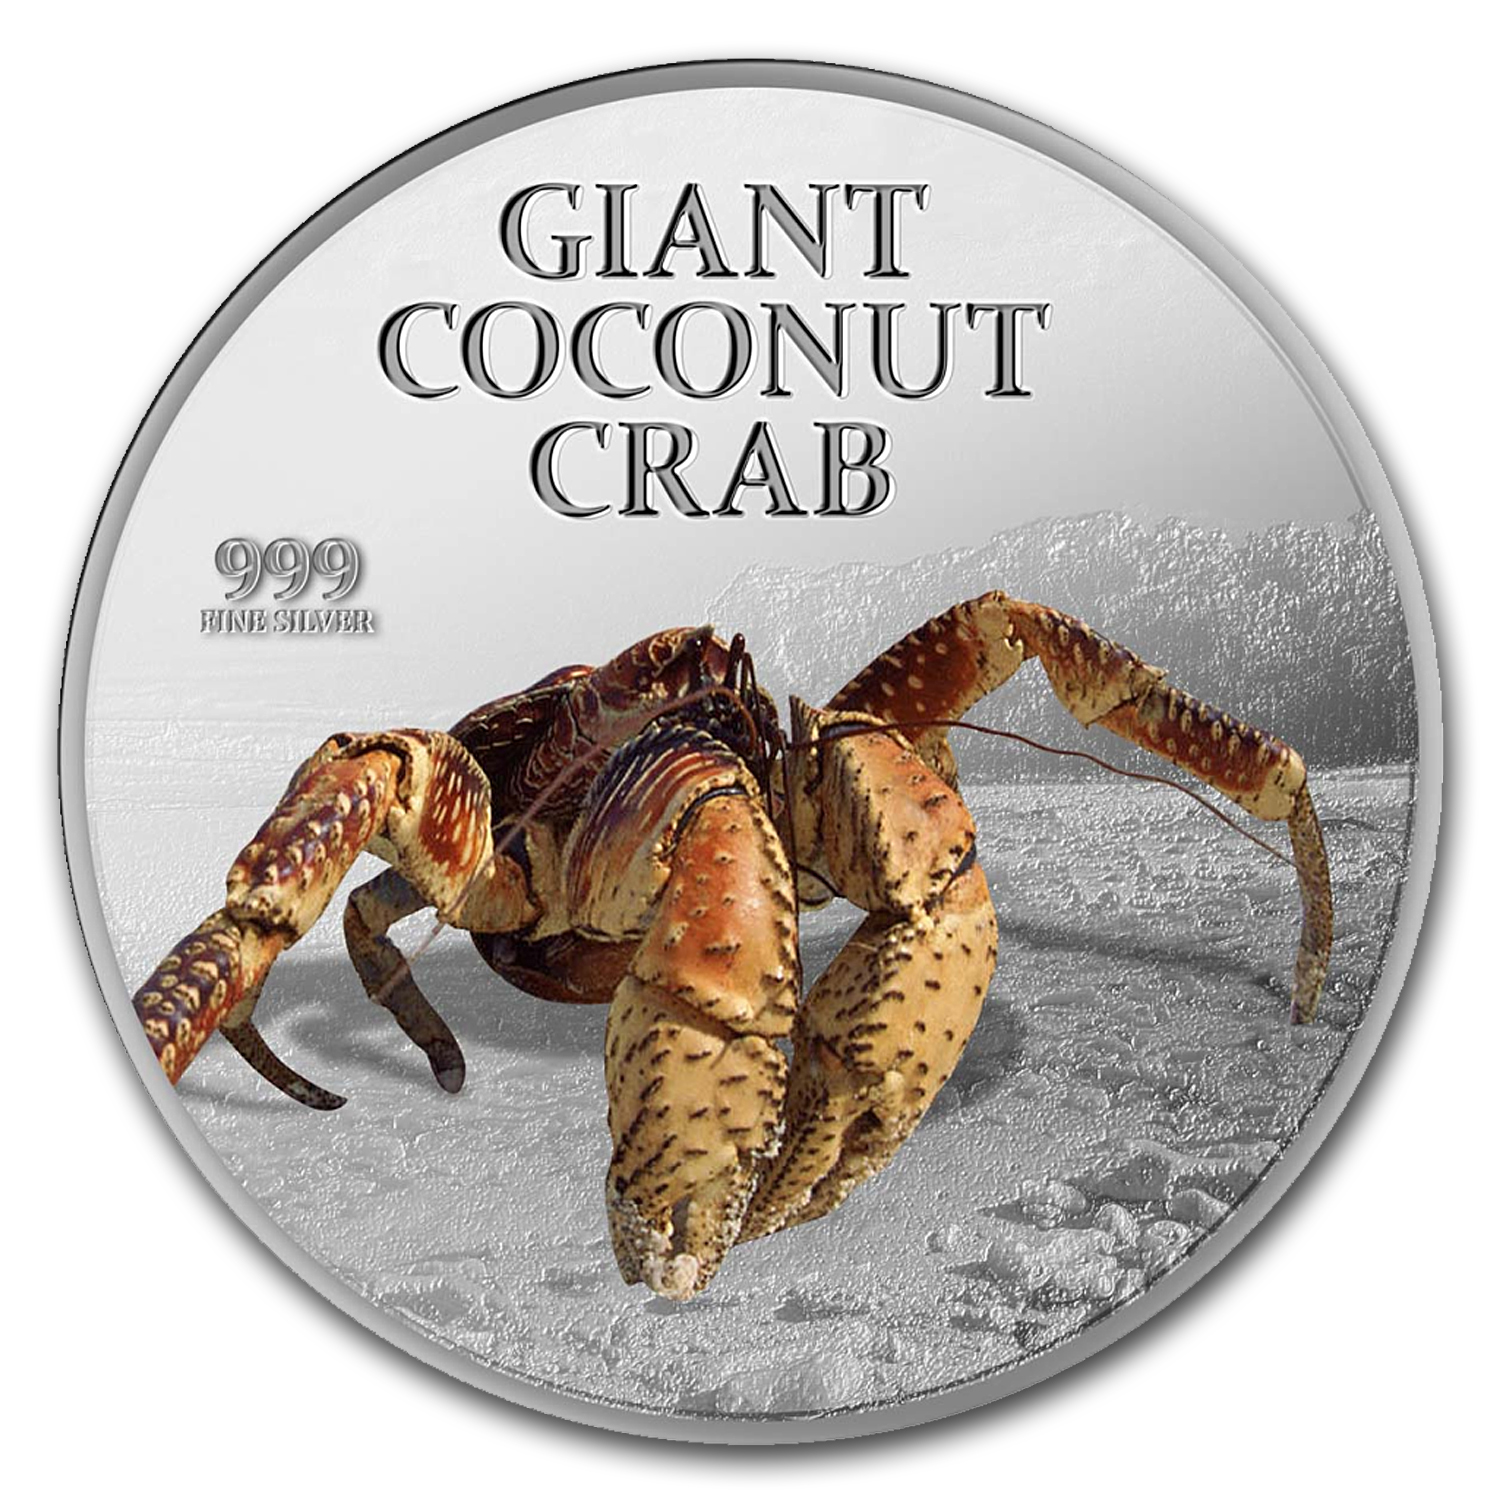 2013 Niue 1 oz Silver $2 Giant Coconut Crab Coin in Box